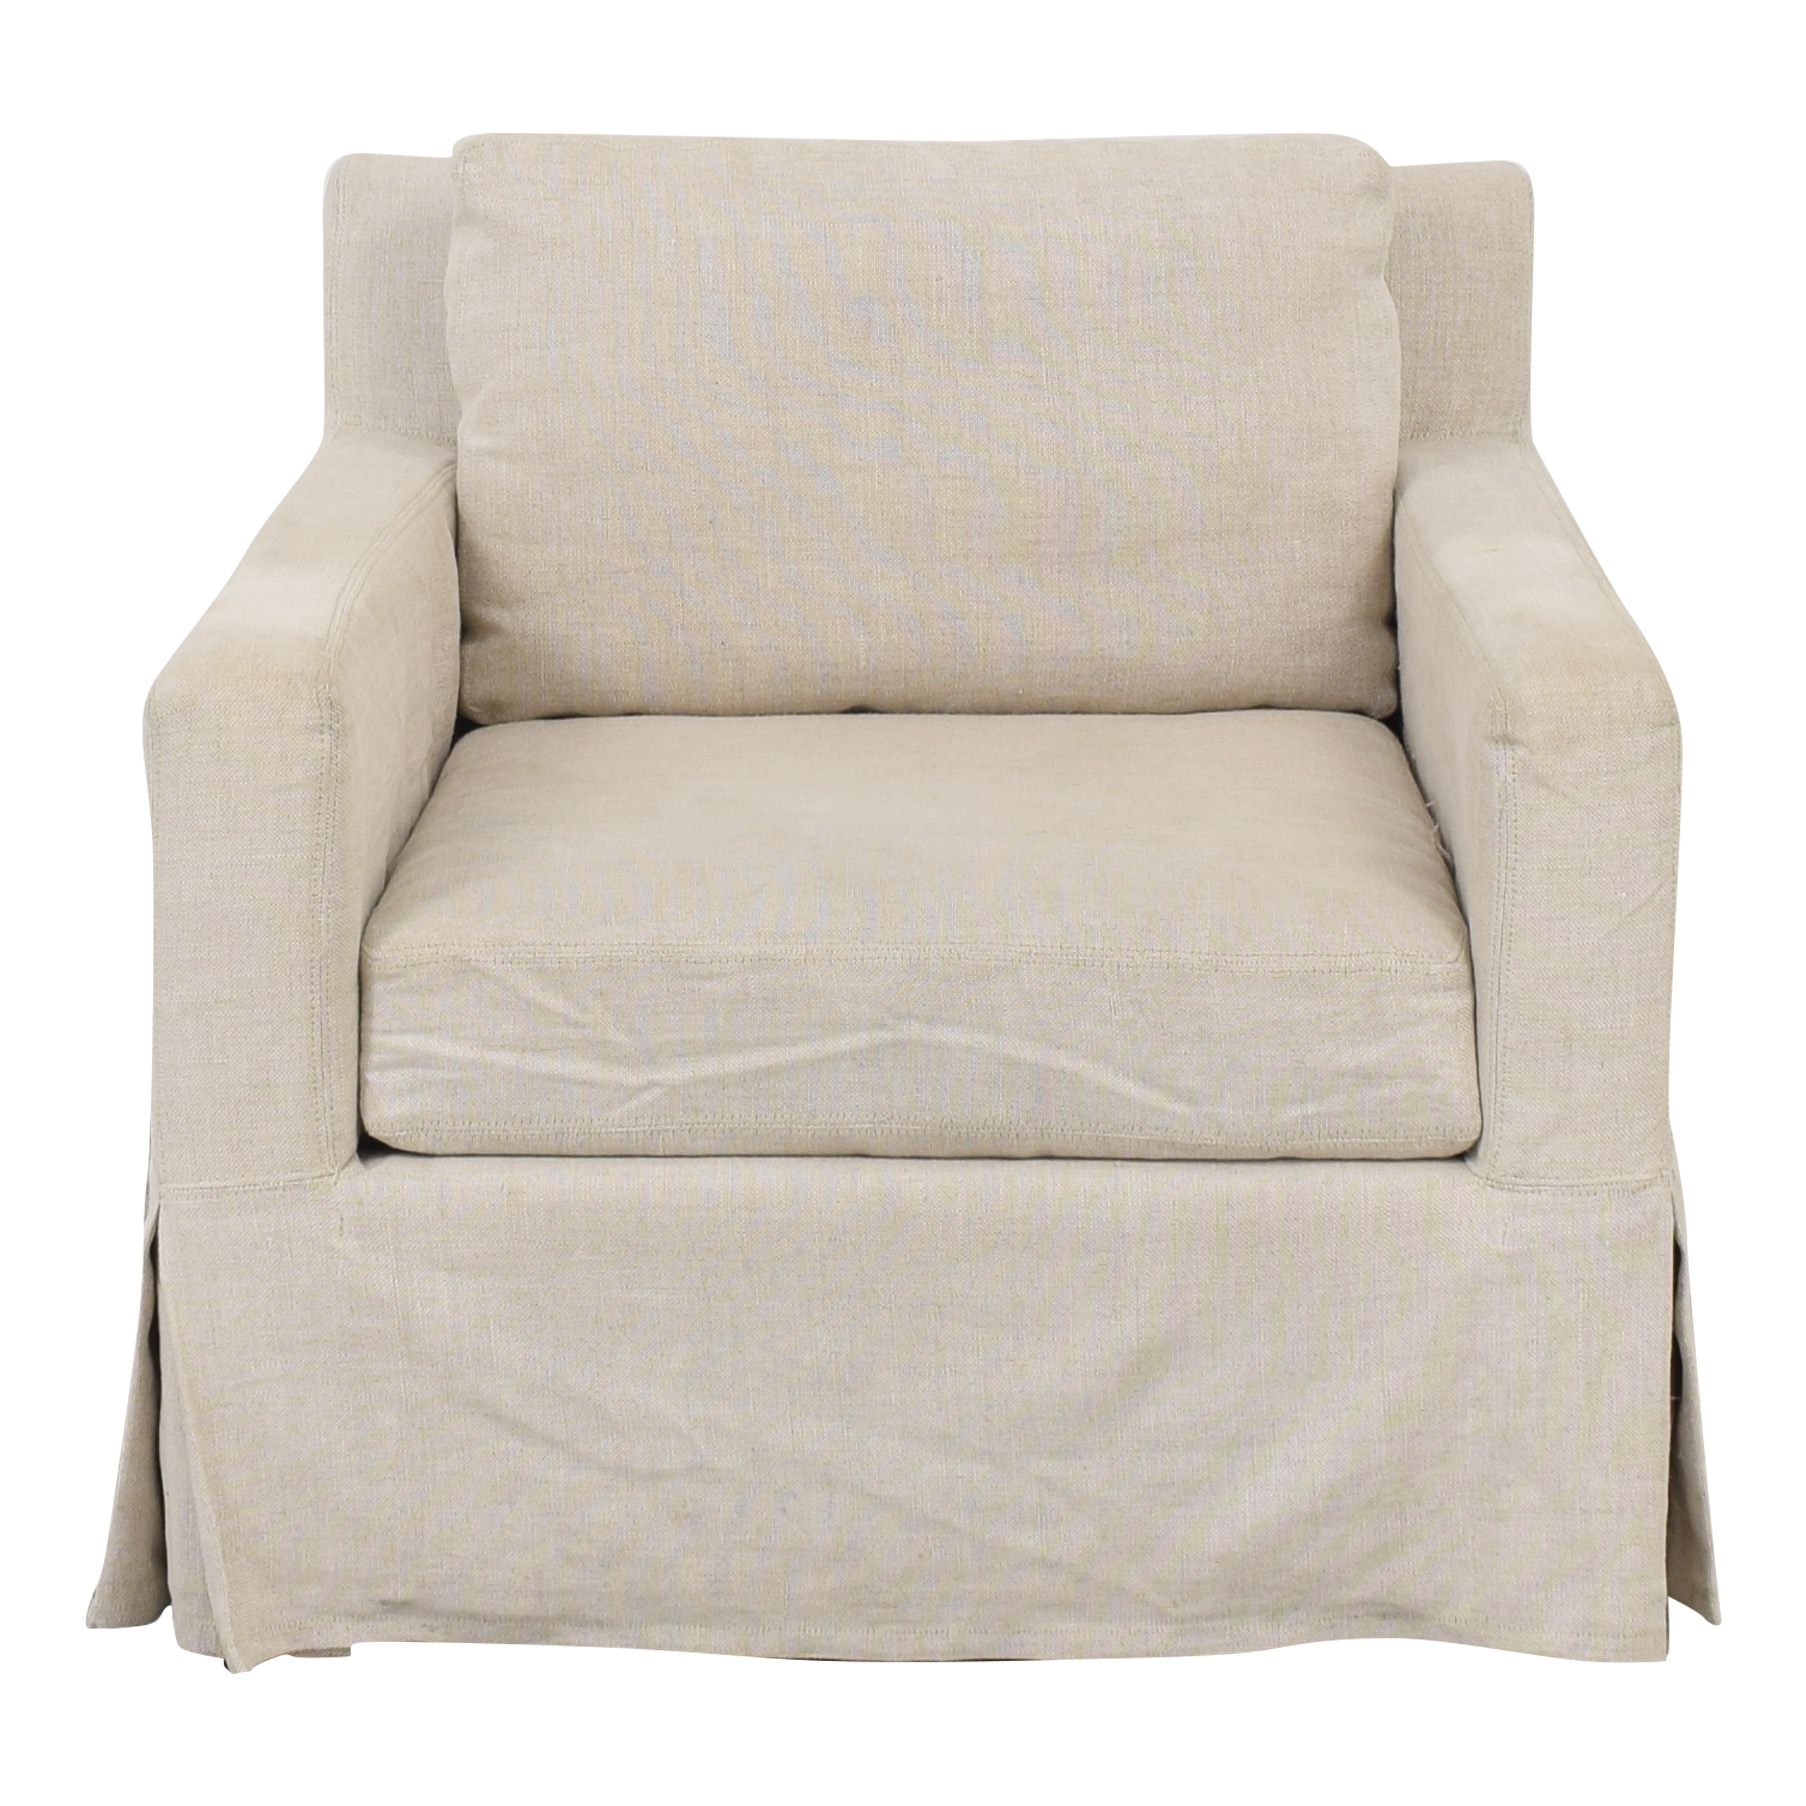 Restoration Hardware Restoration Hardware Belgian Linen Track Arm Slipcovered Chair for sale